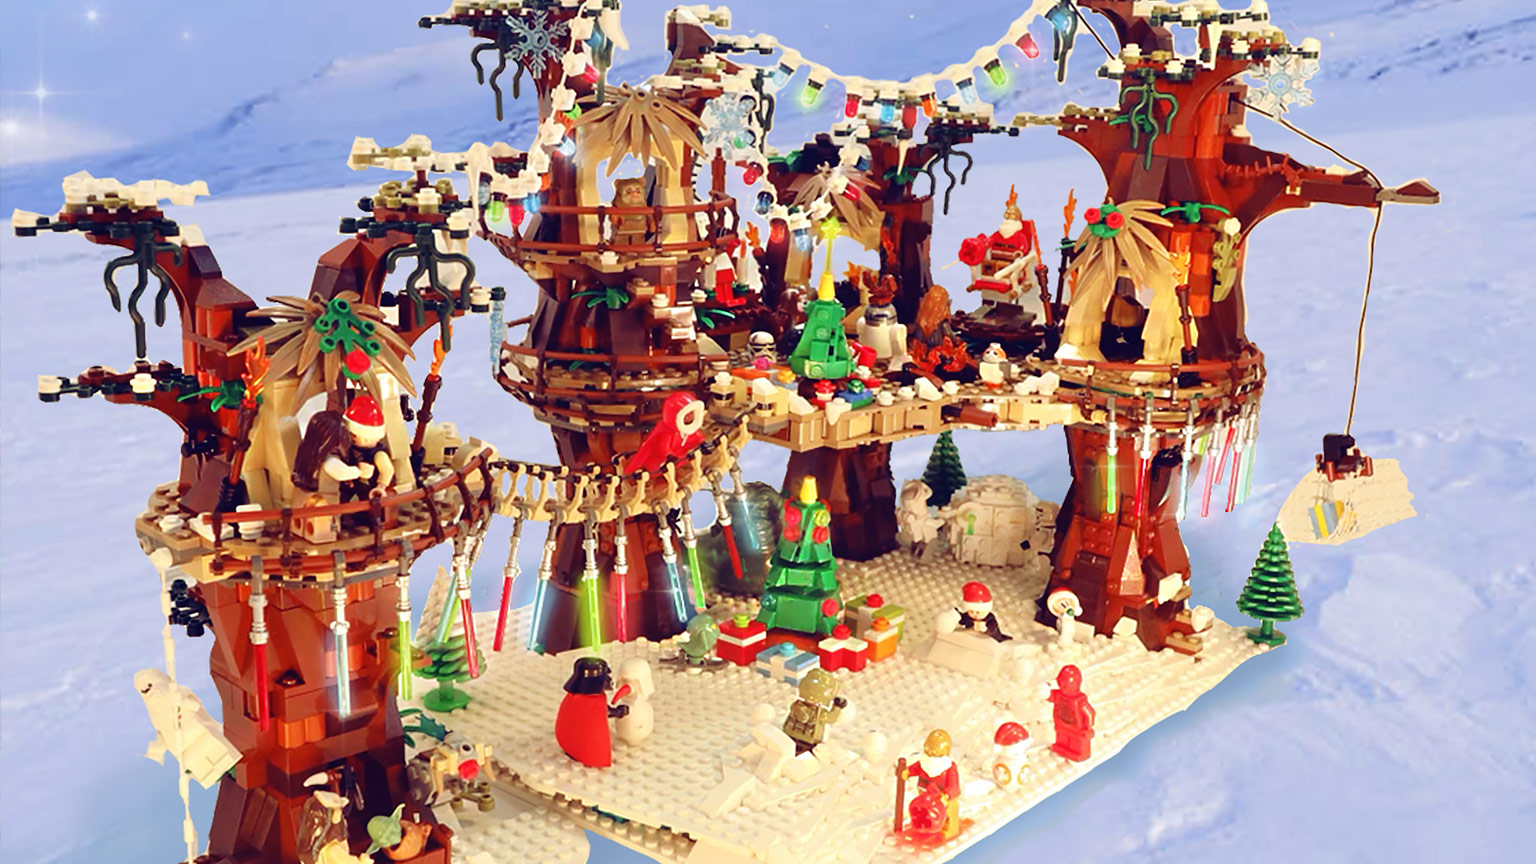 LEGO Star Wars Holiday contest submission - Lindsay Virgilio